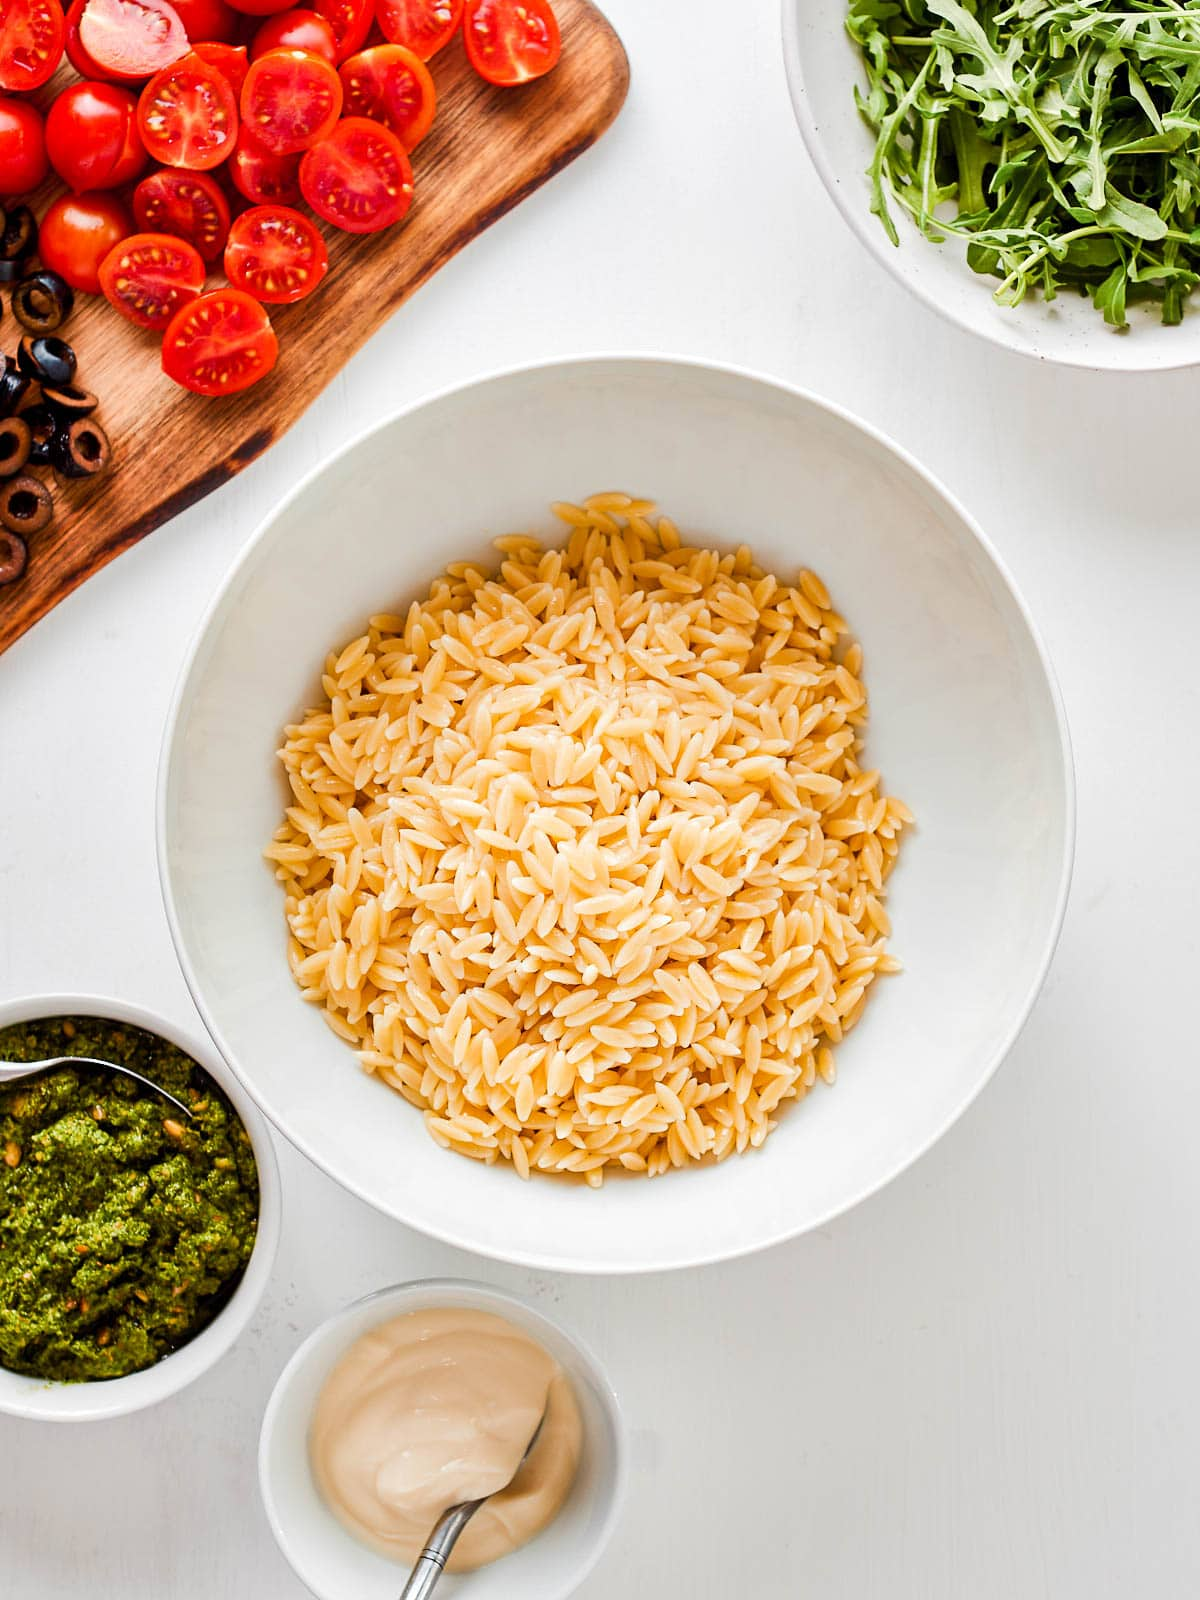 Orzo in mixing bowl